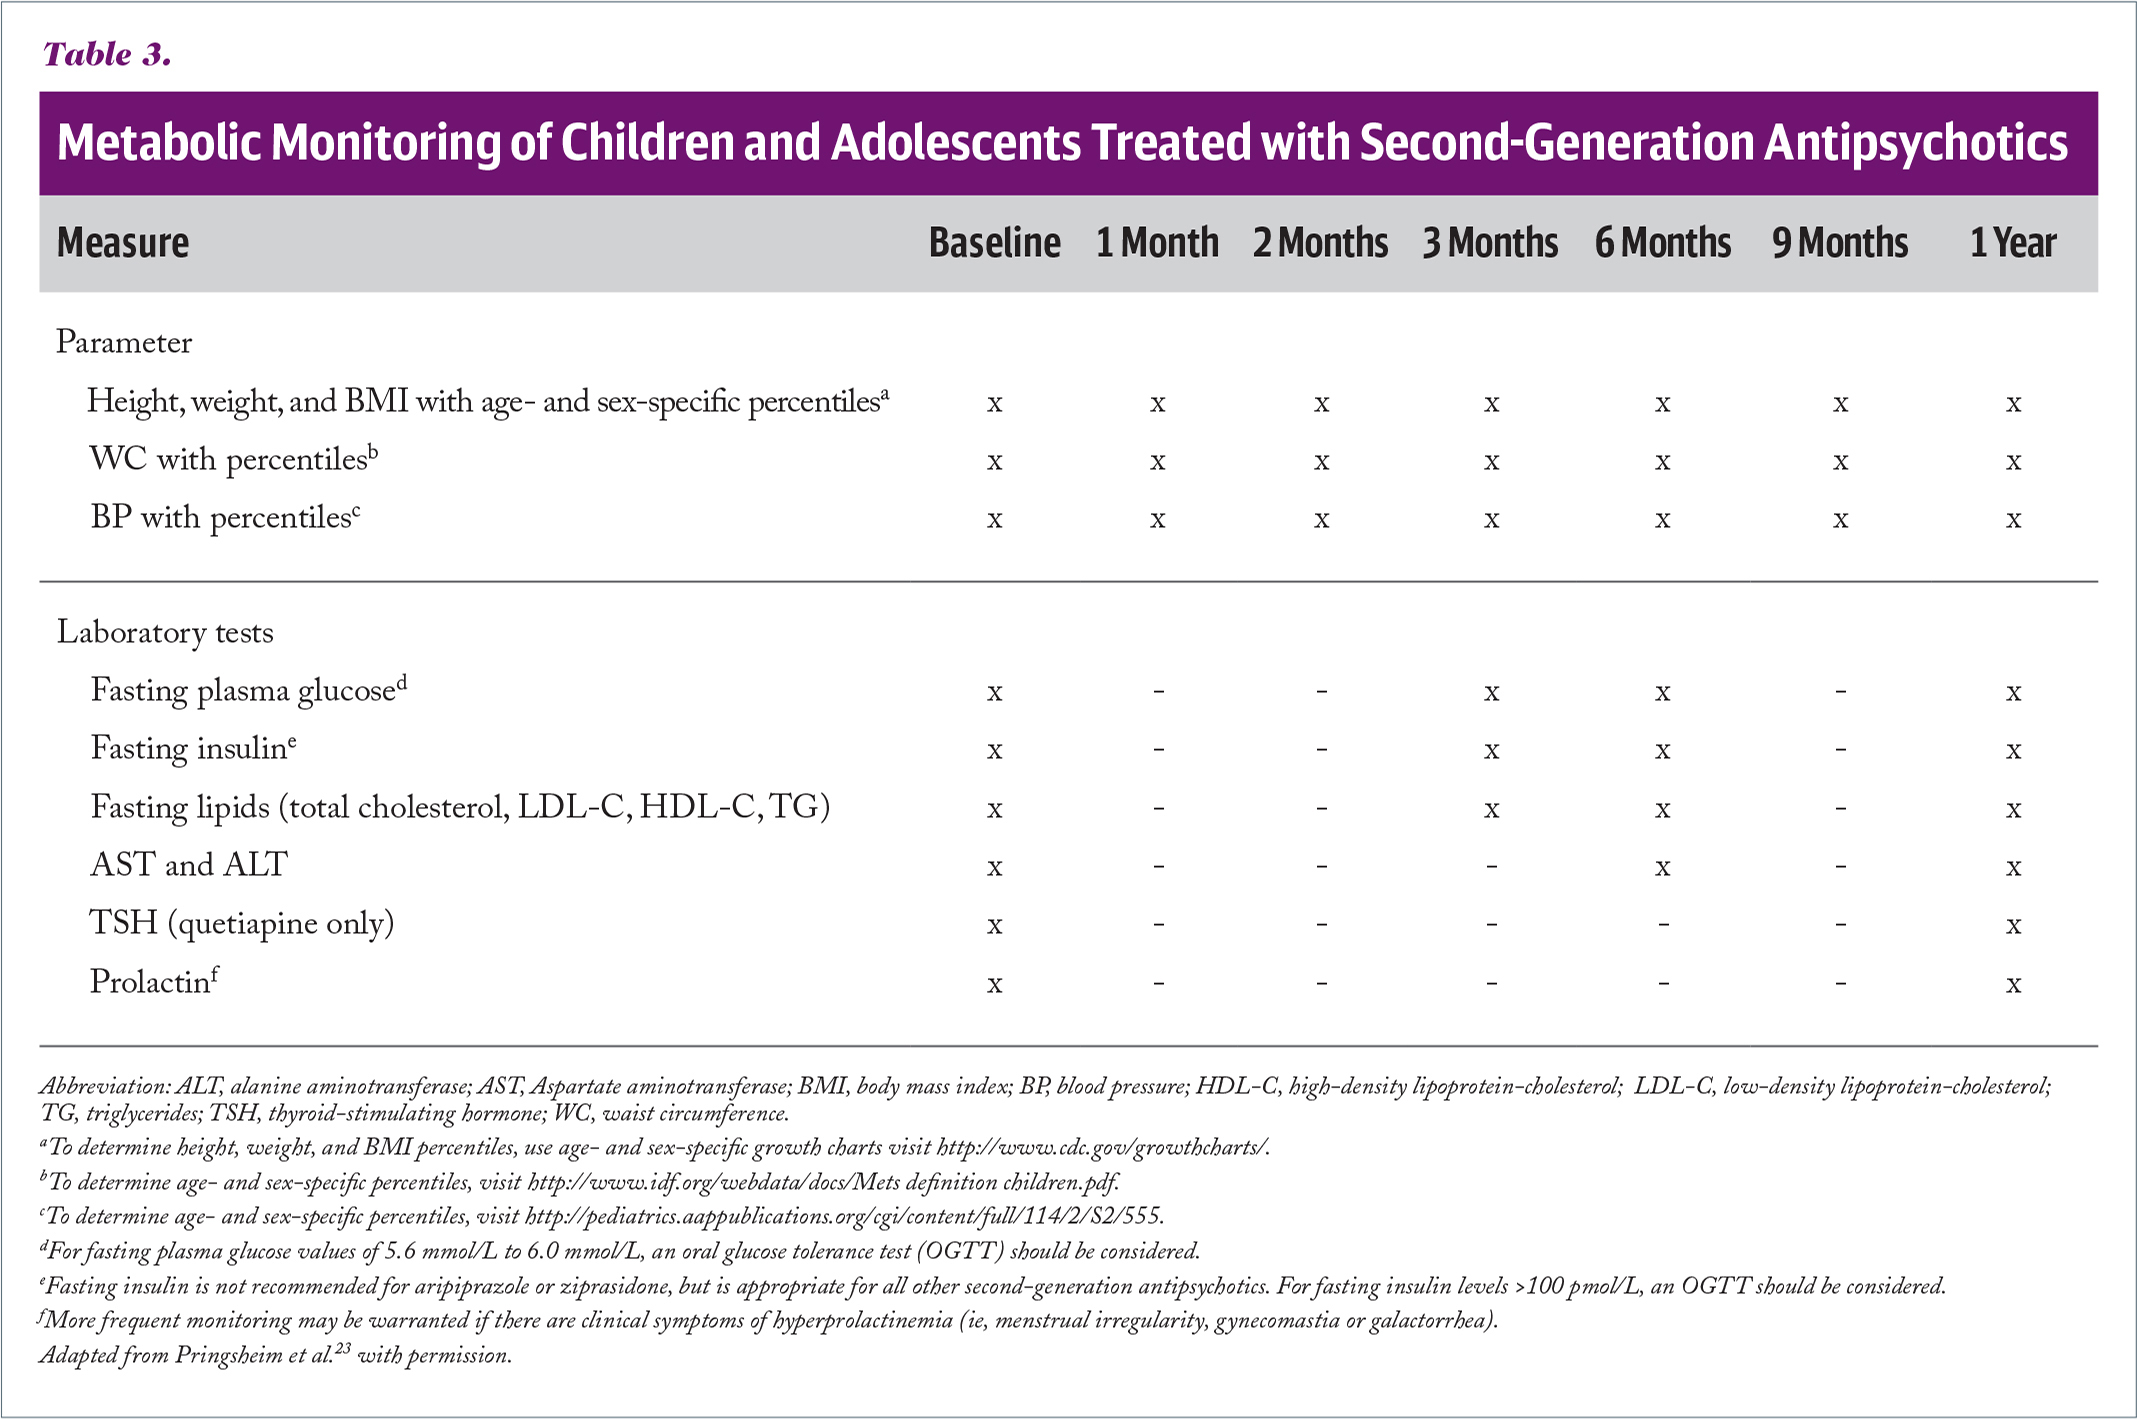 Metabolic Monitoring of Children and Adolescents Treated with Second-Generation Antipsychotics